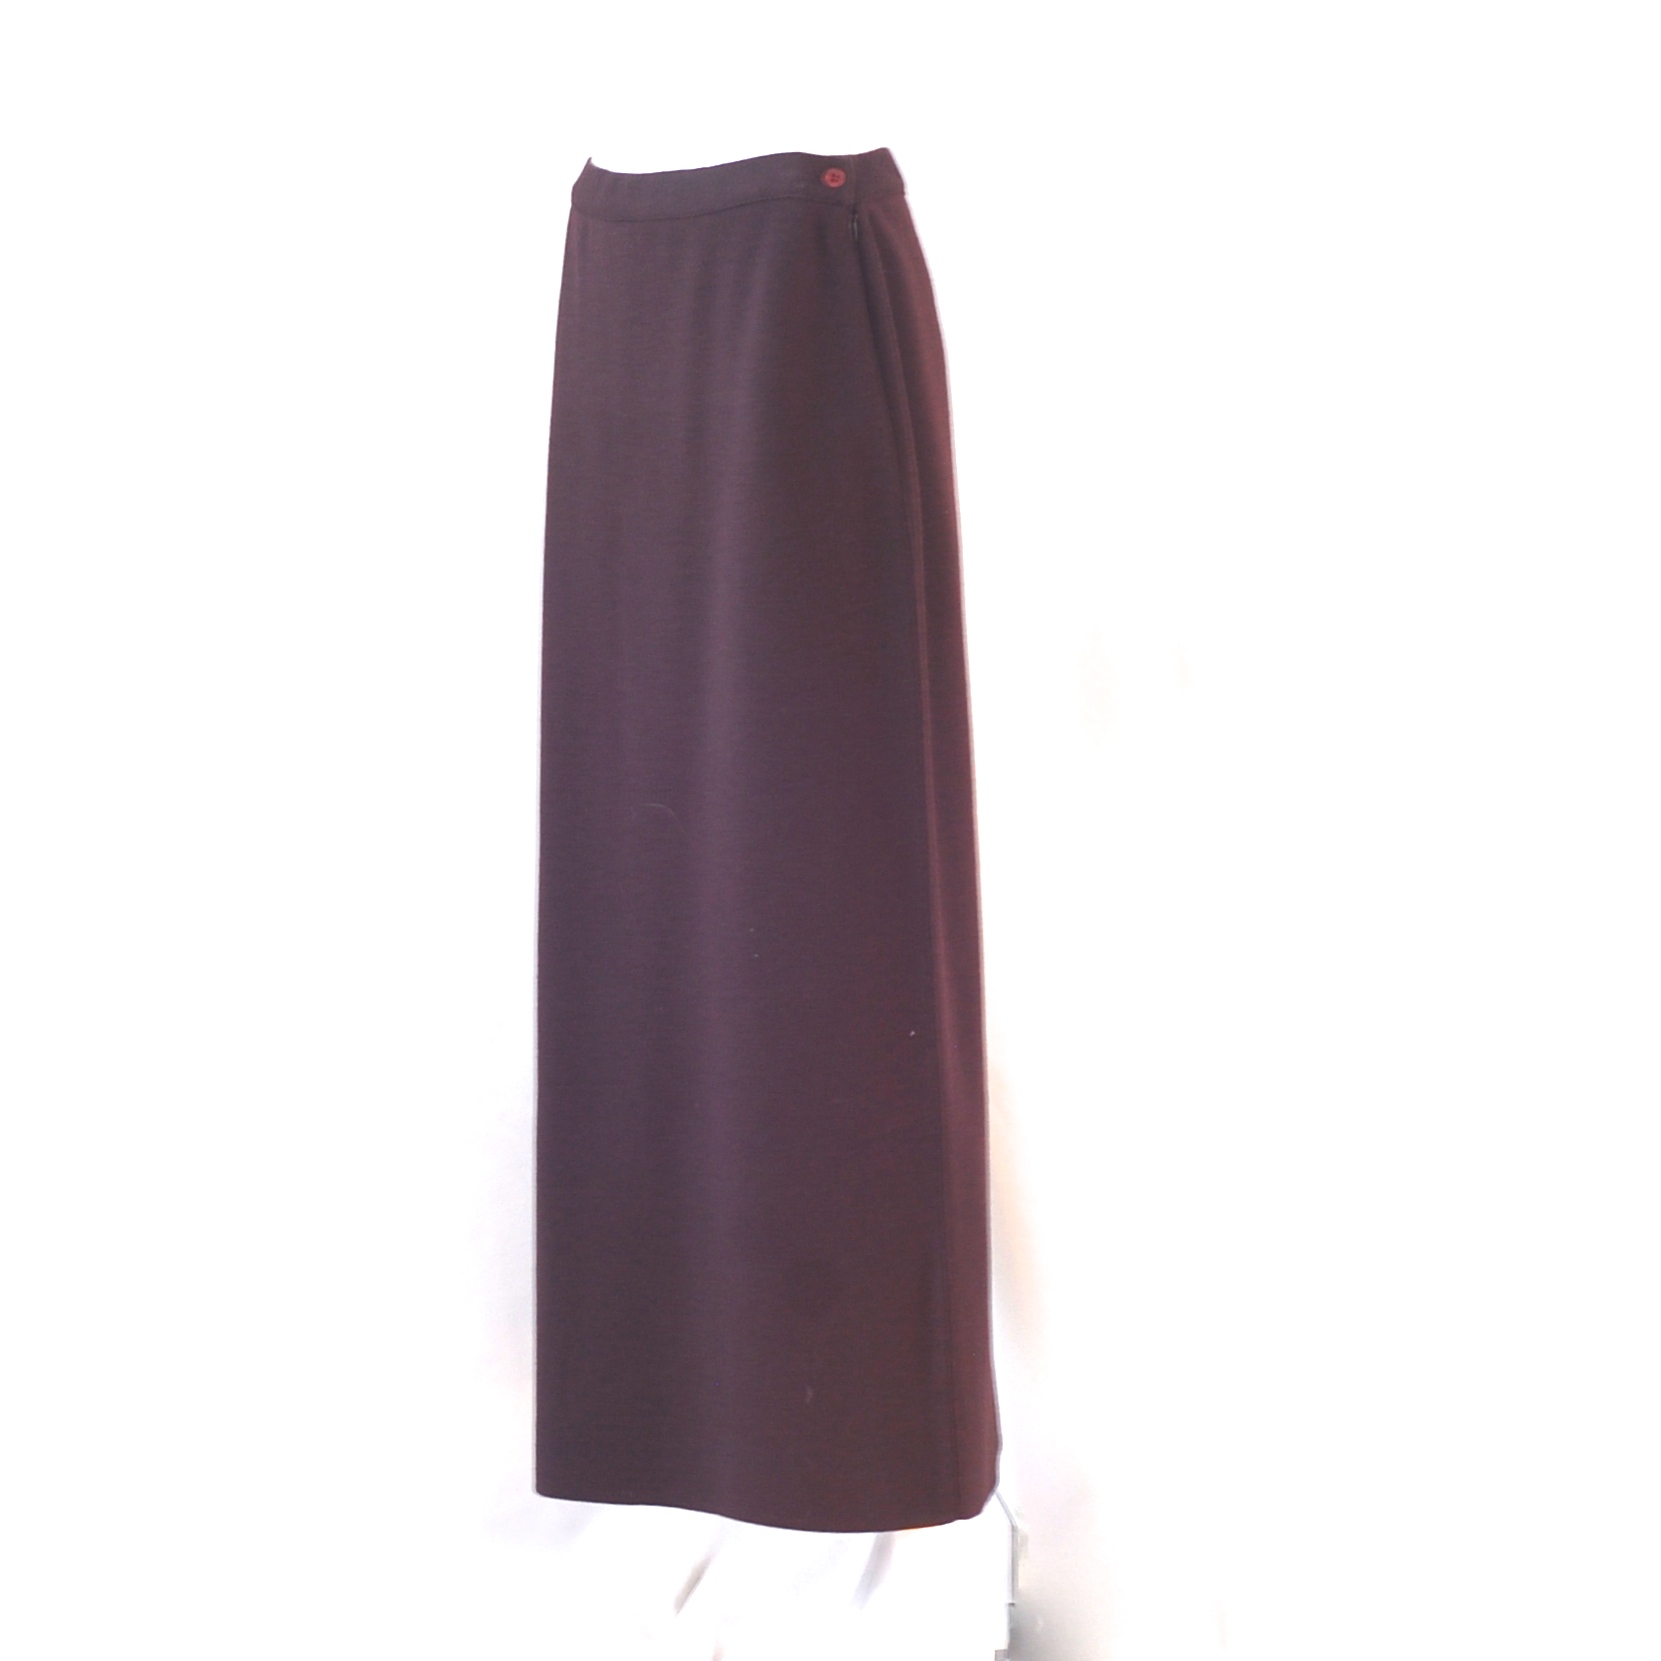 Your brown straight skirt